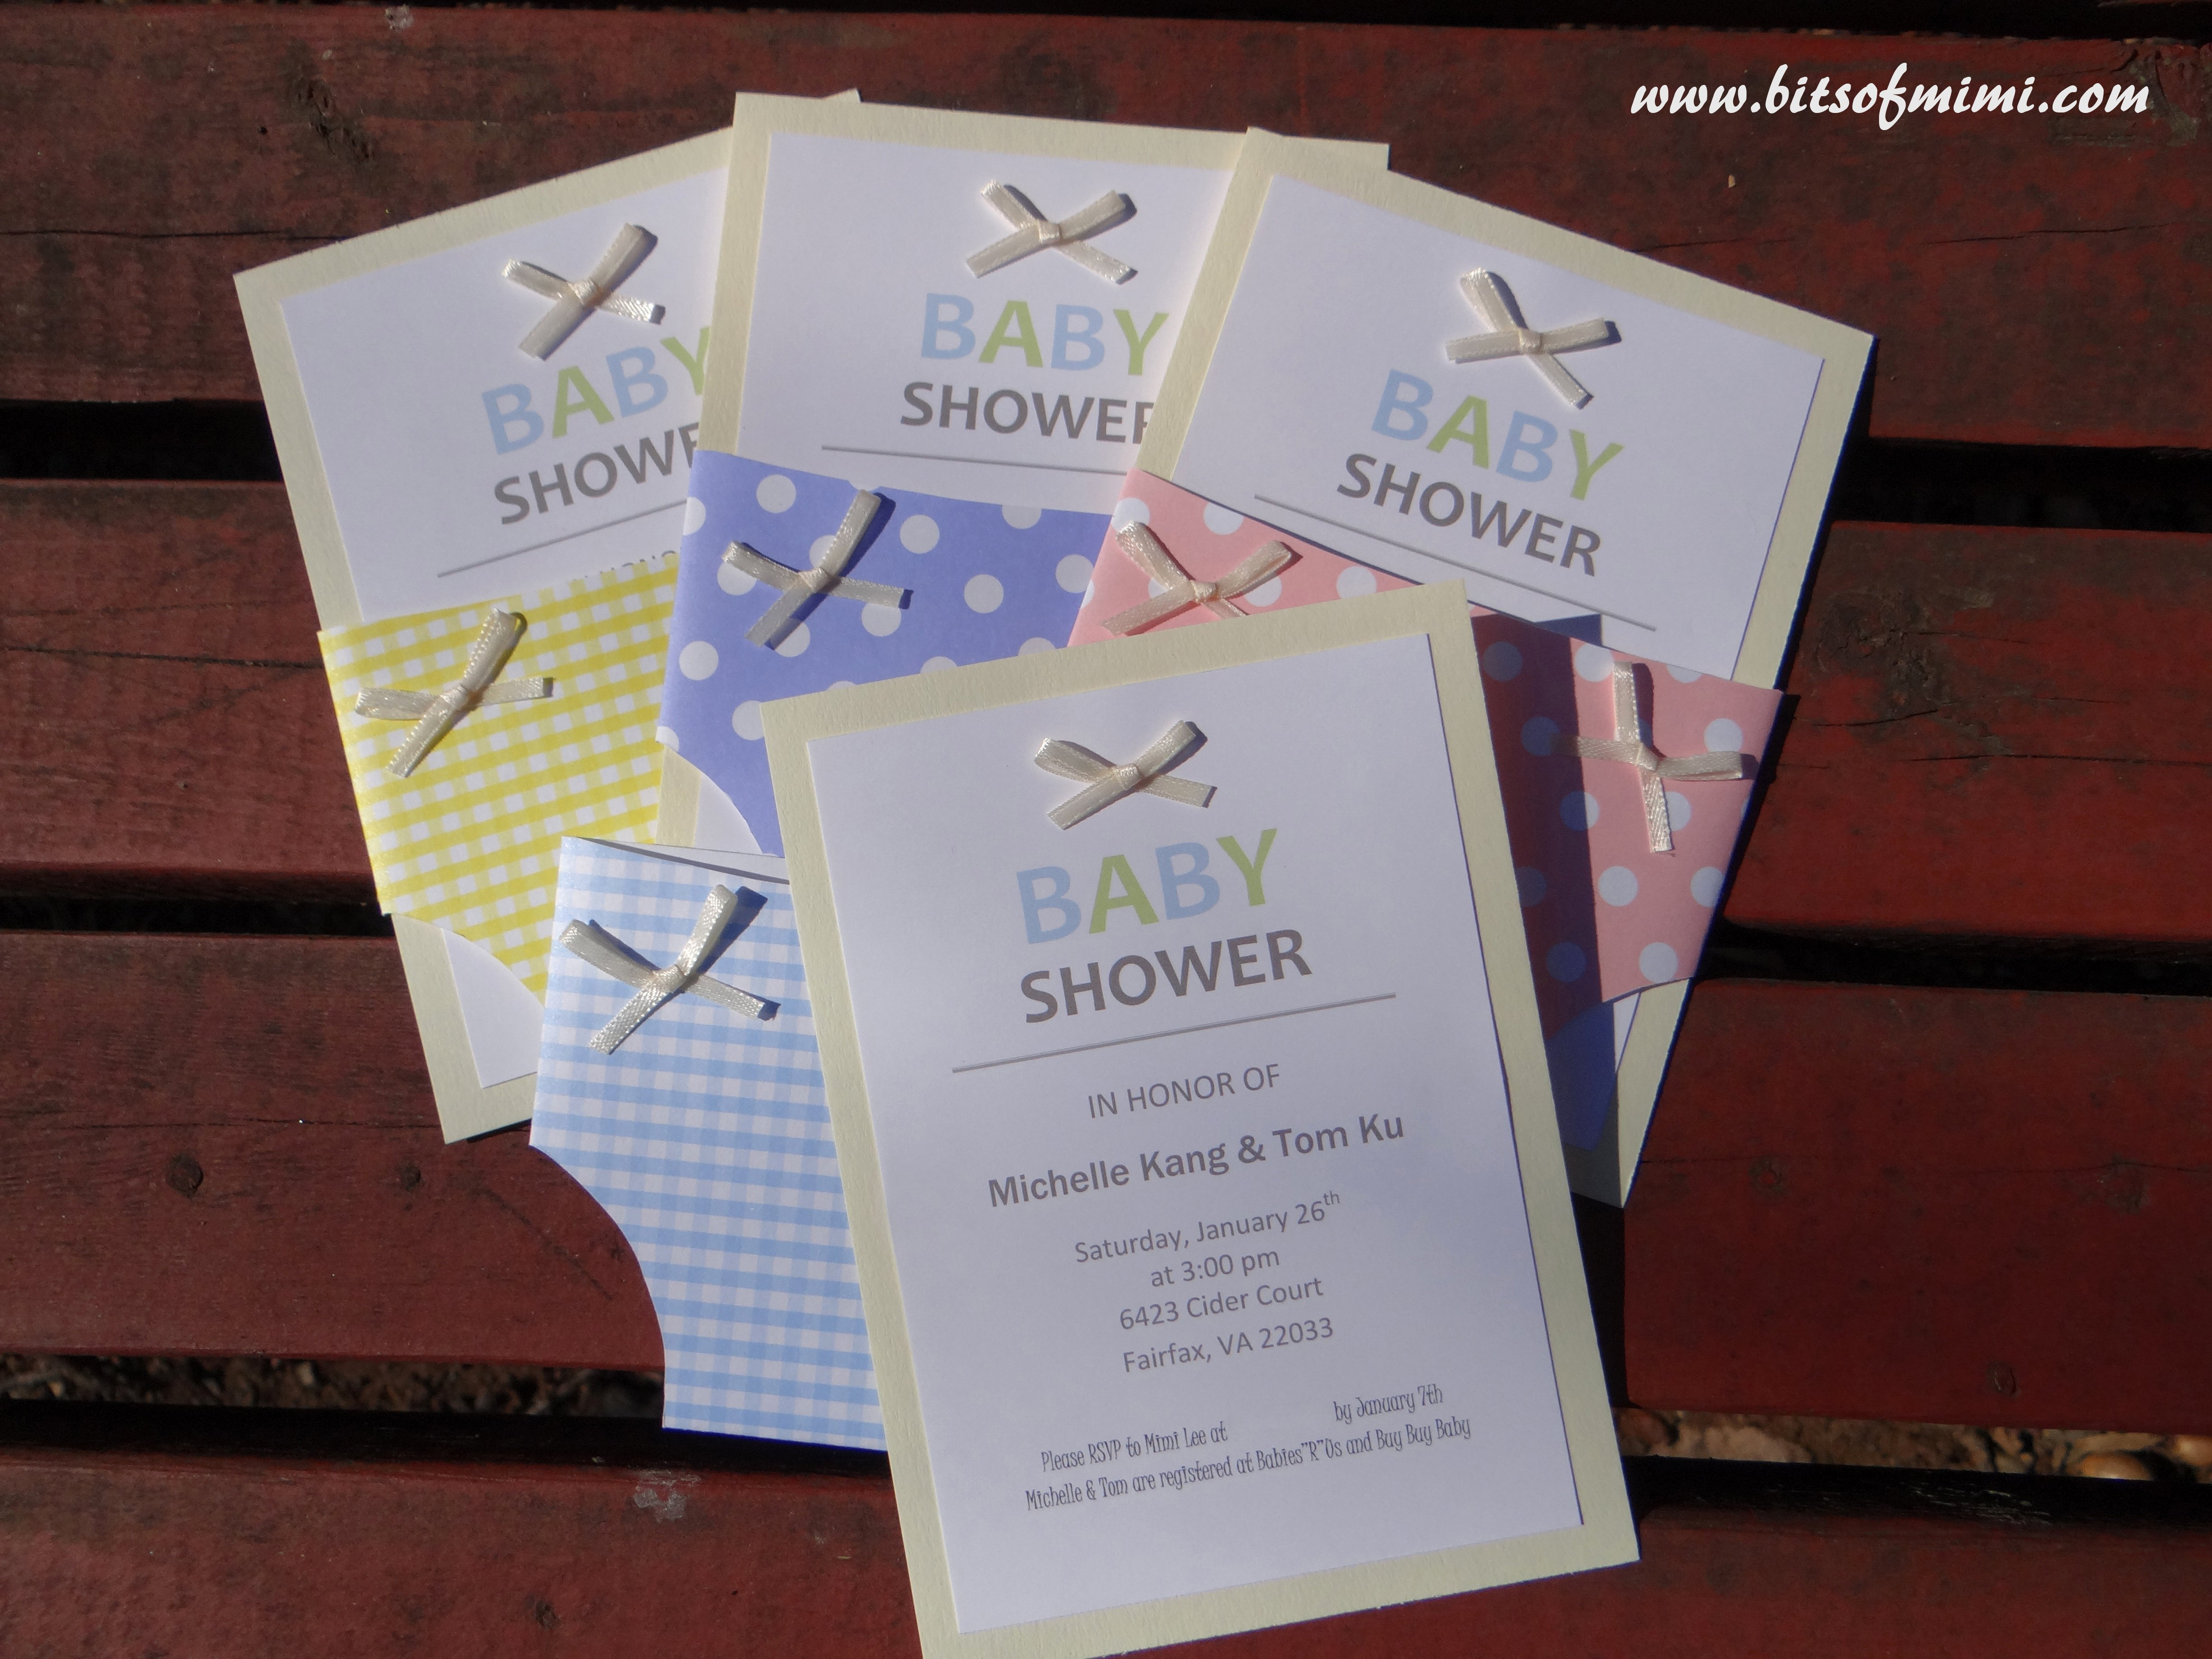 Baby Shower Invitations Make Baby Shower Invitations for